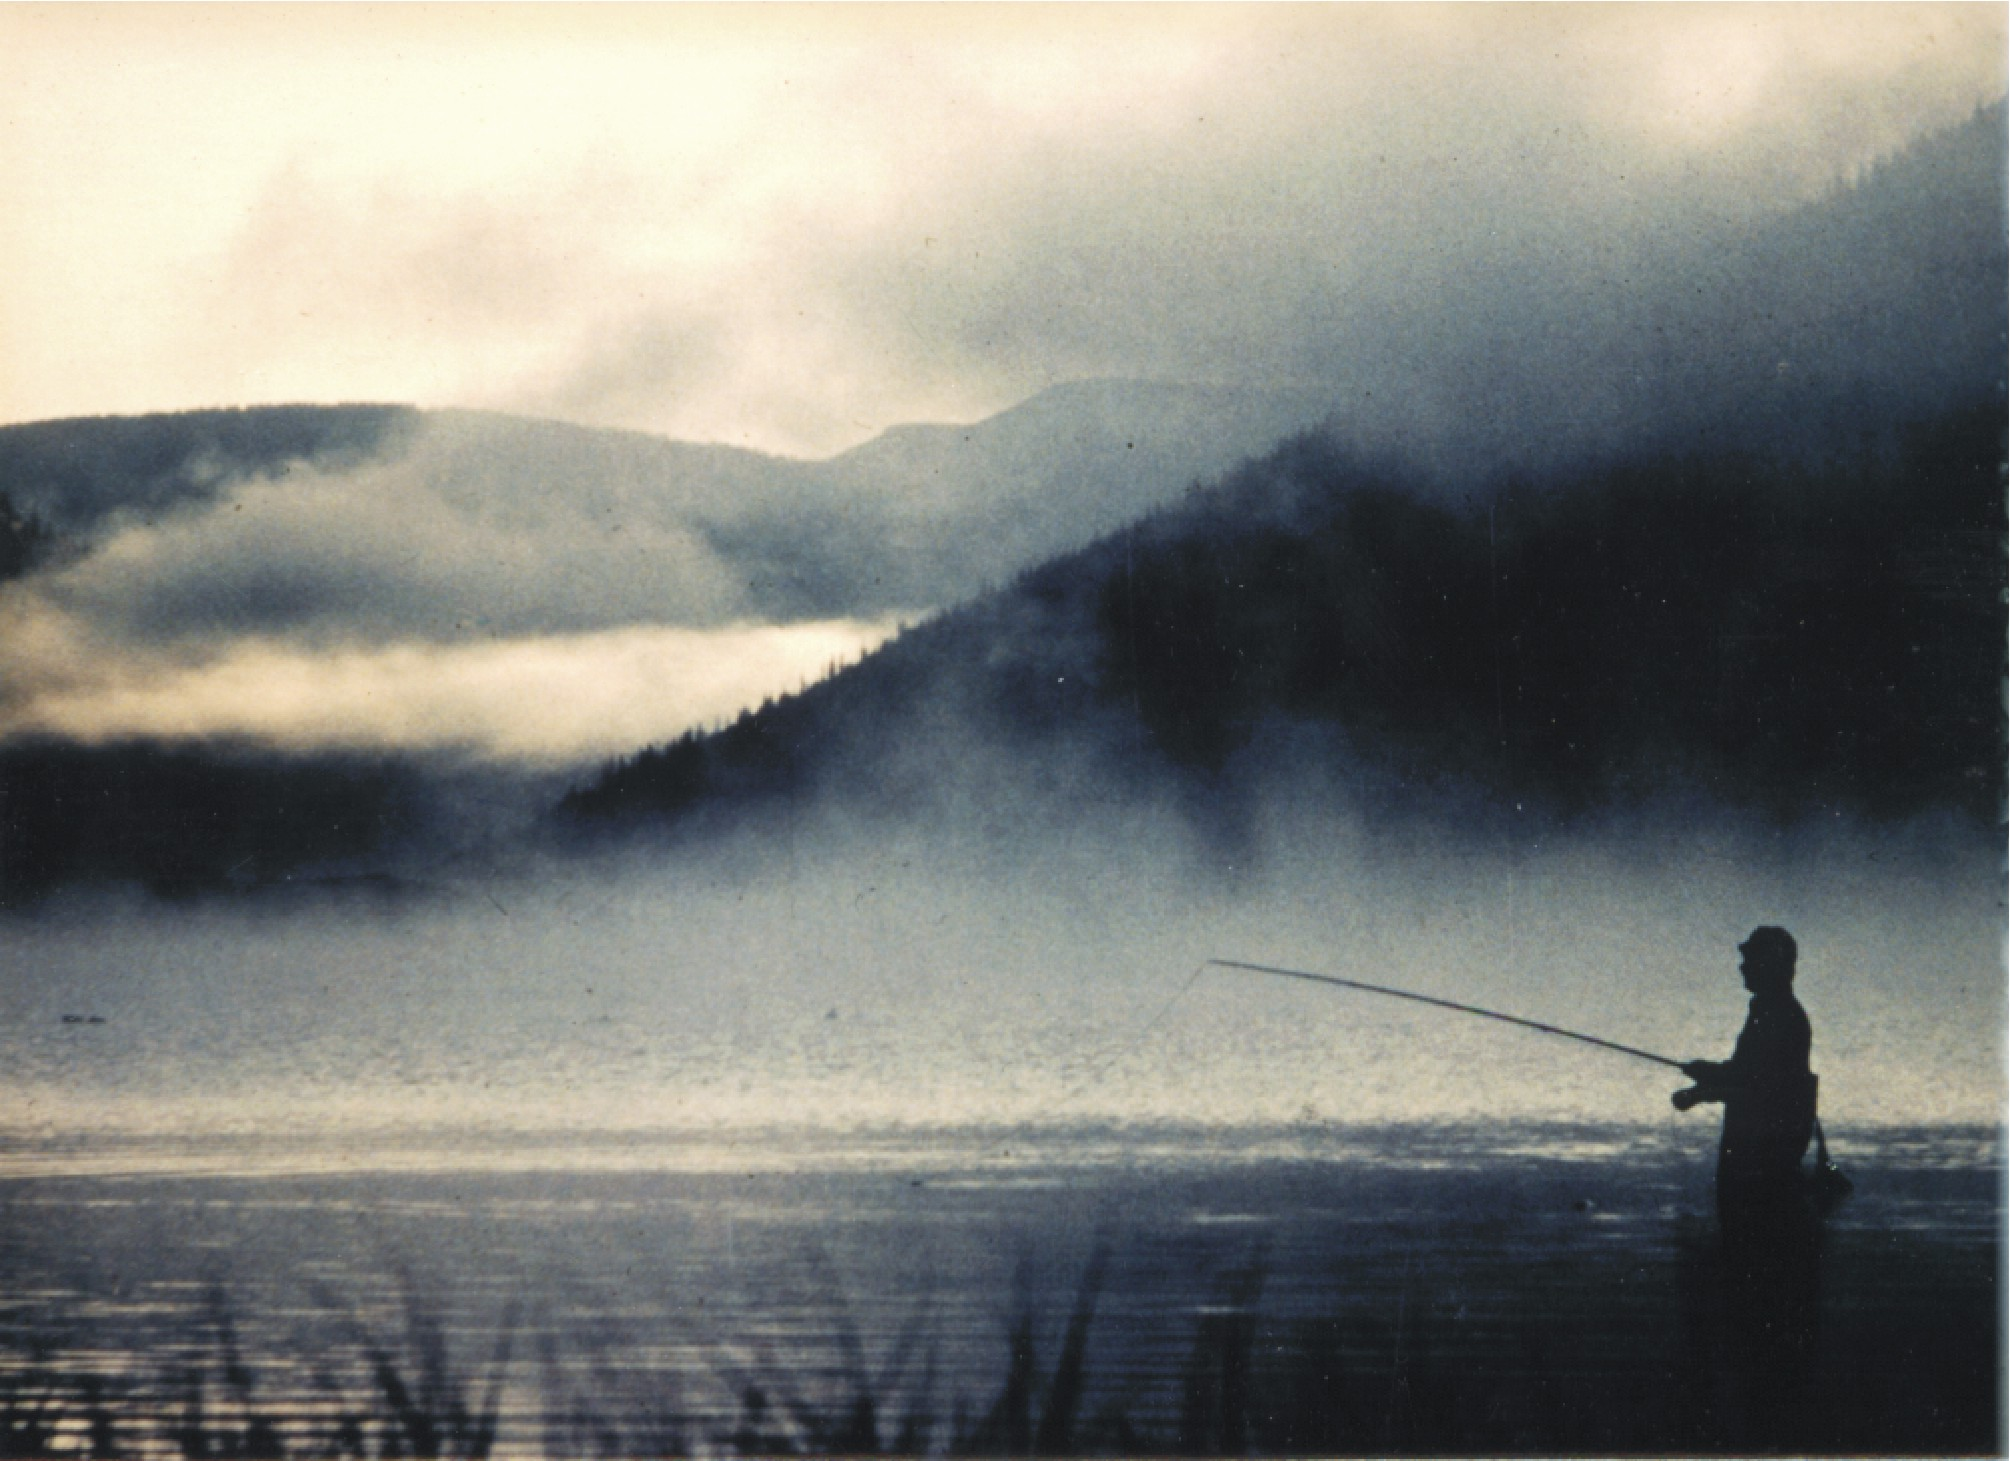 Fly fishing in the fog of Yampa River